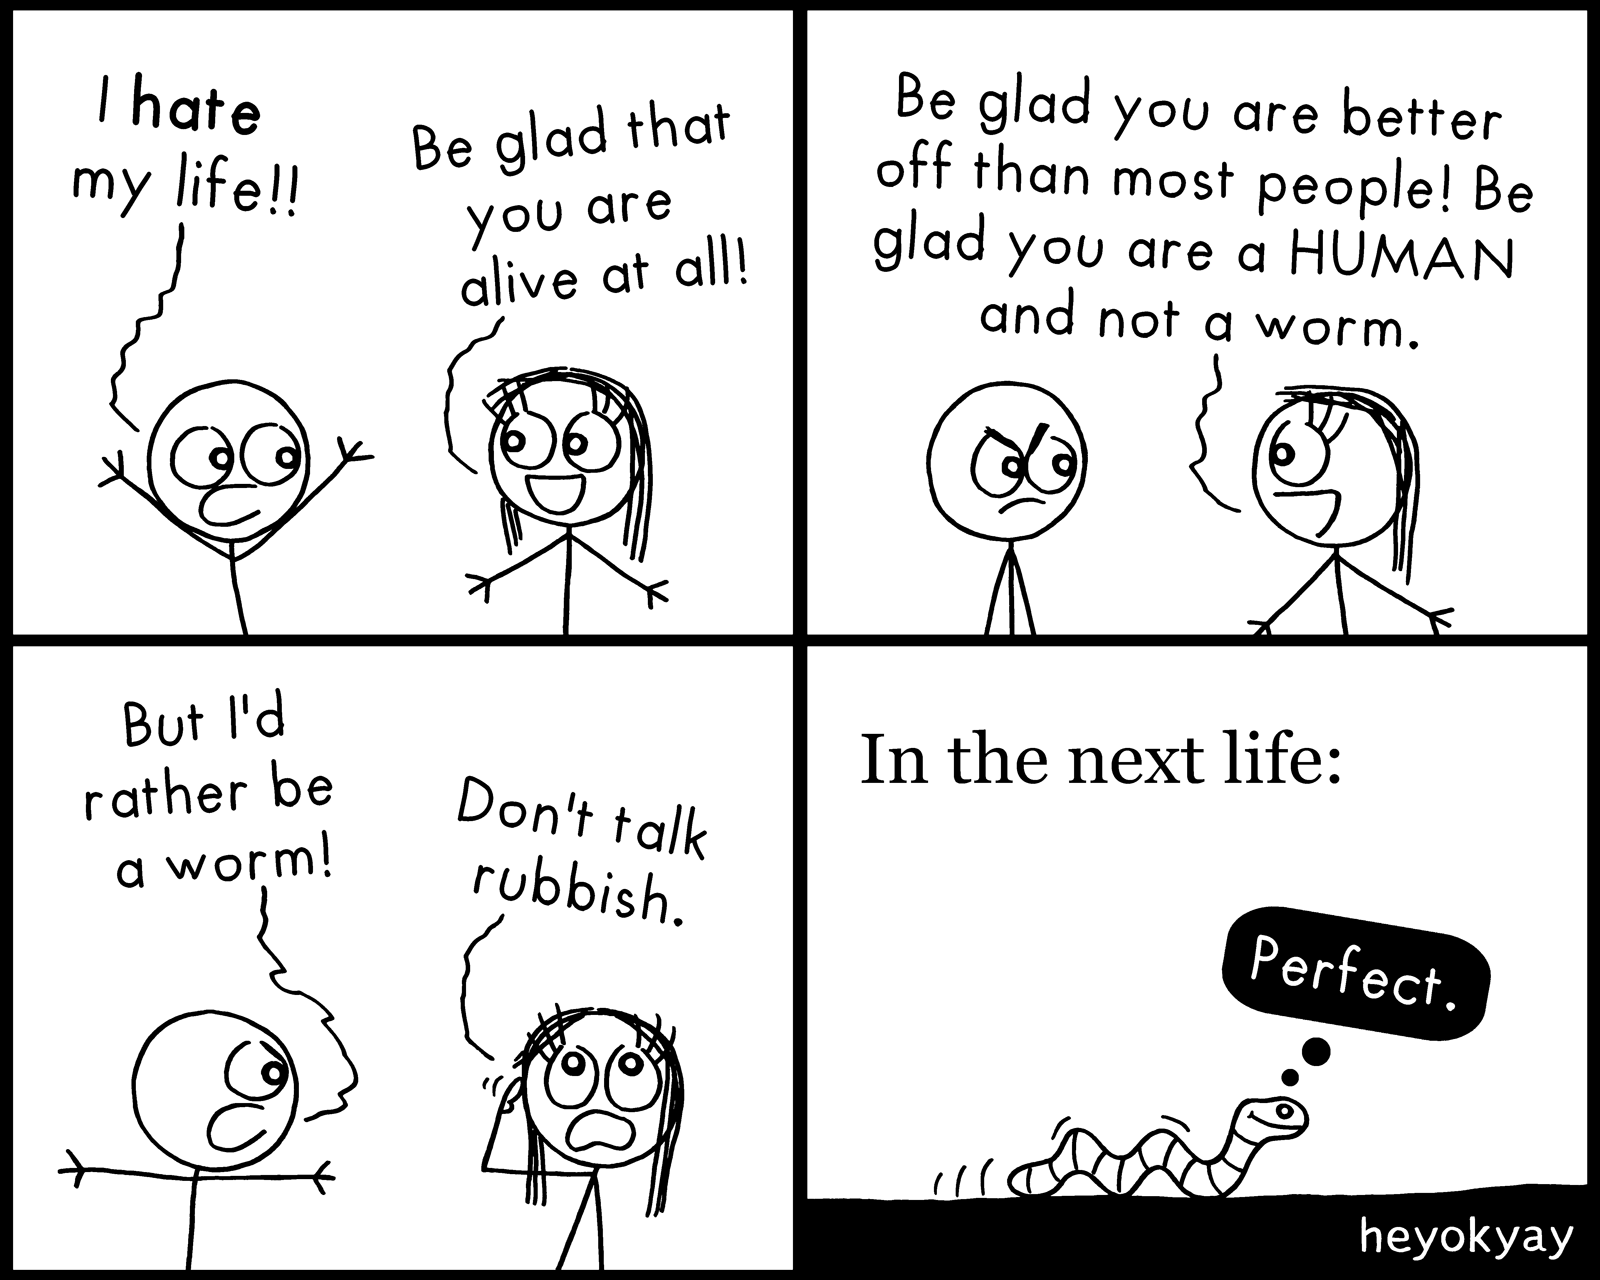 Be Glad! heyokyay comic